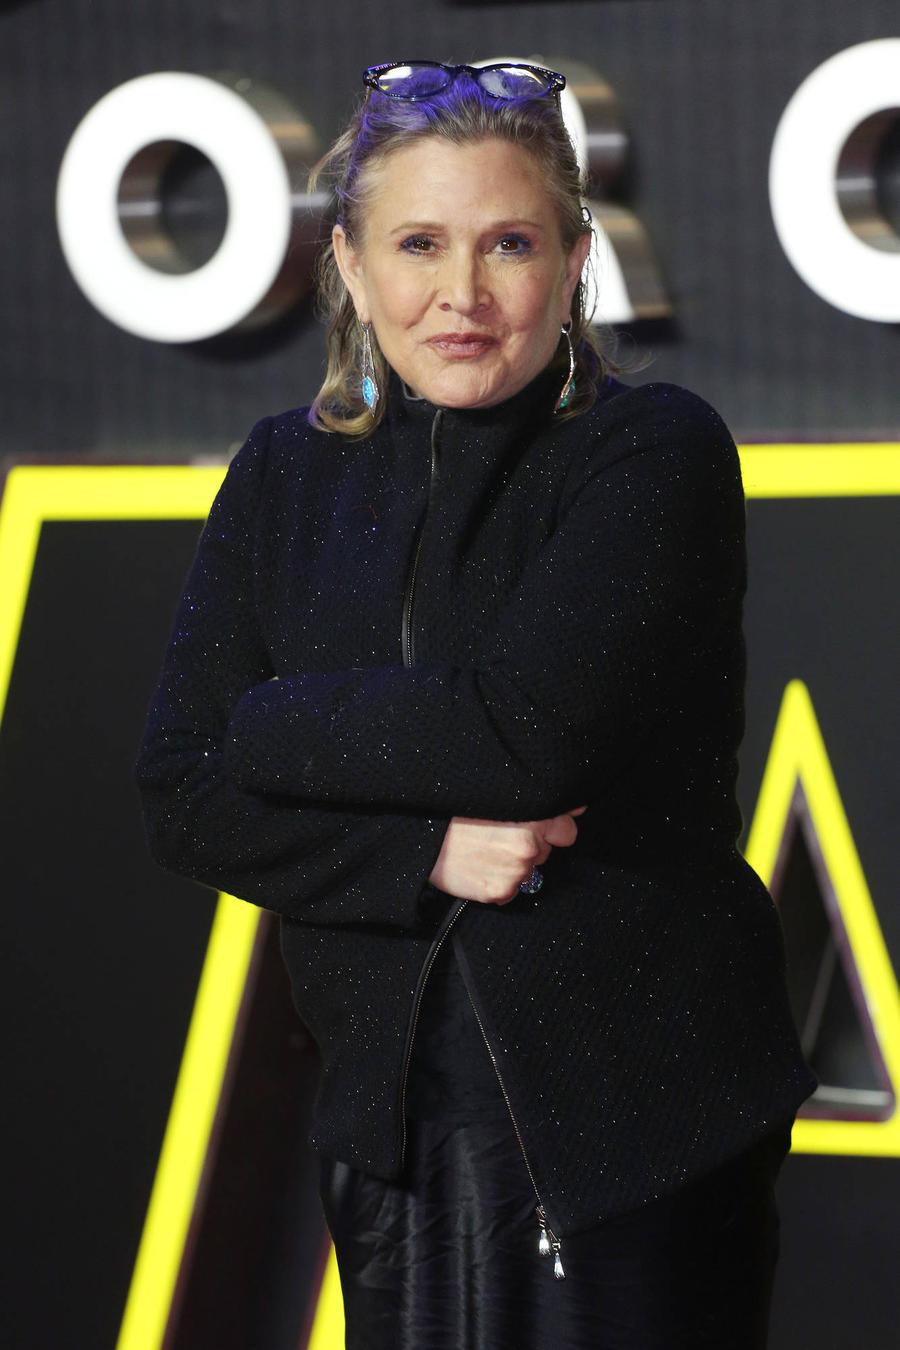 Carrie Fisher Clears Up Harrison Ford 'Bad In Bed' Gossip